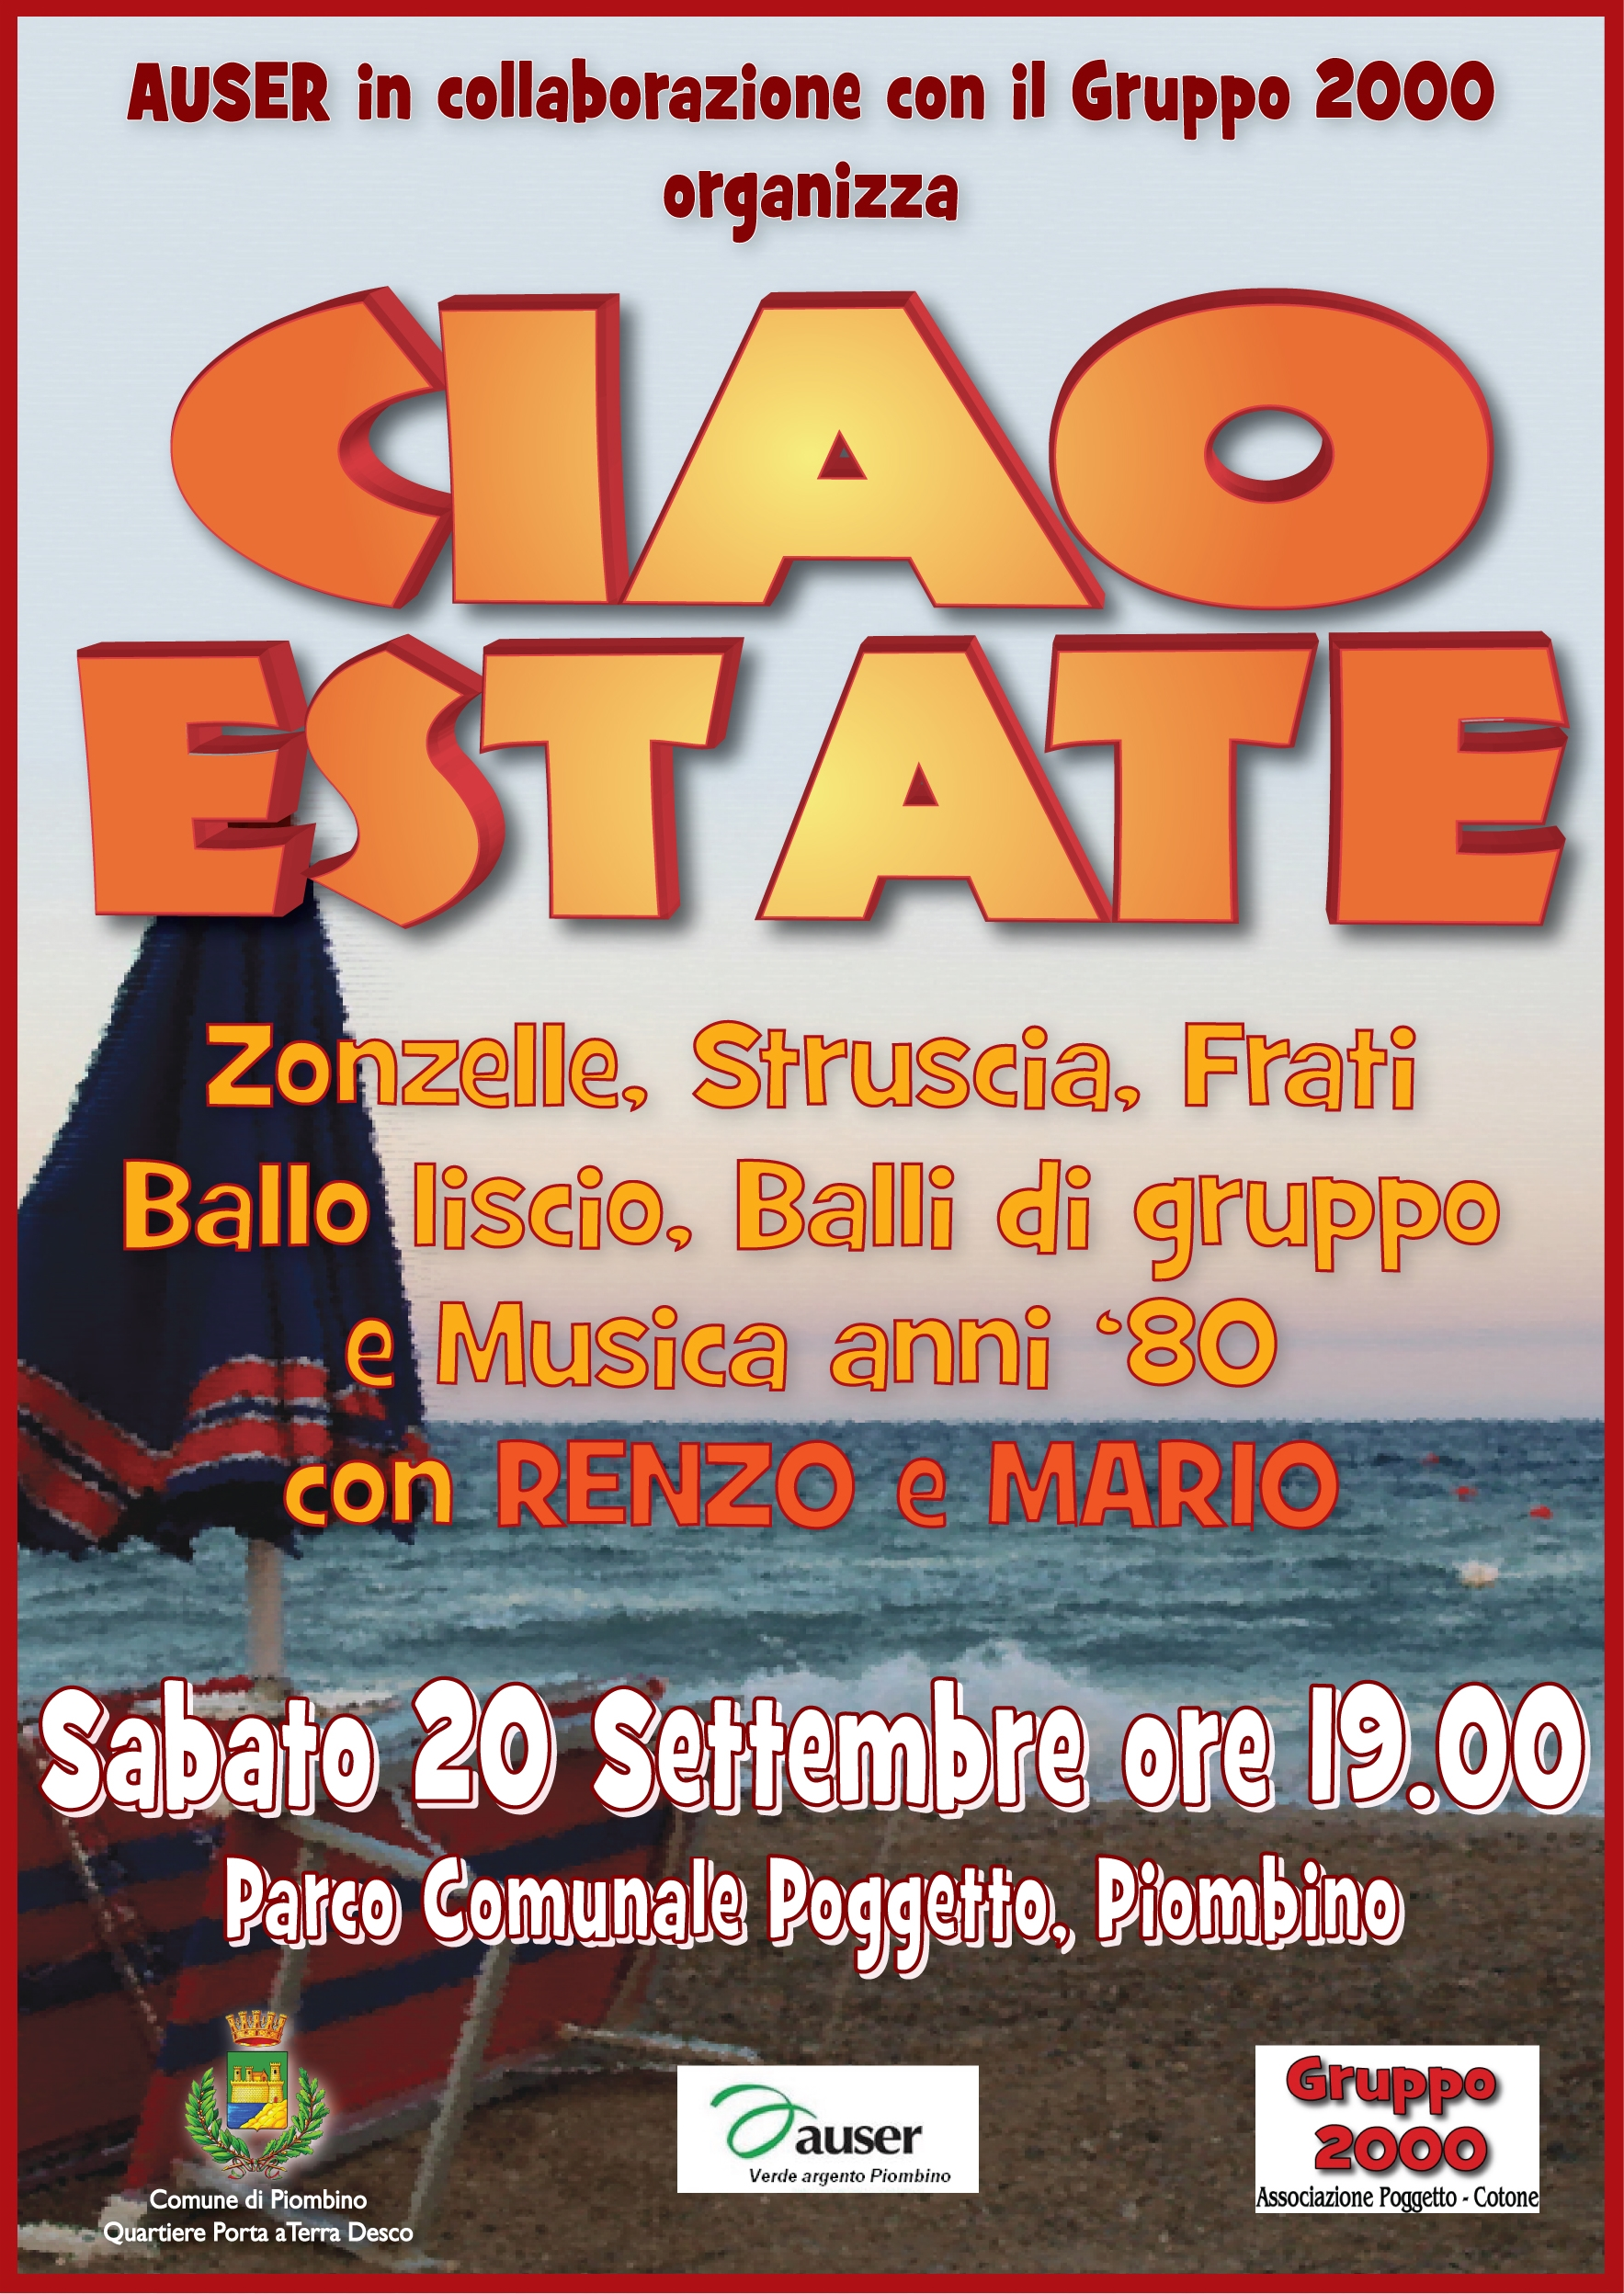 CIAO ESTATE